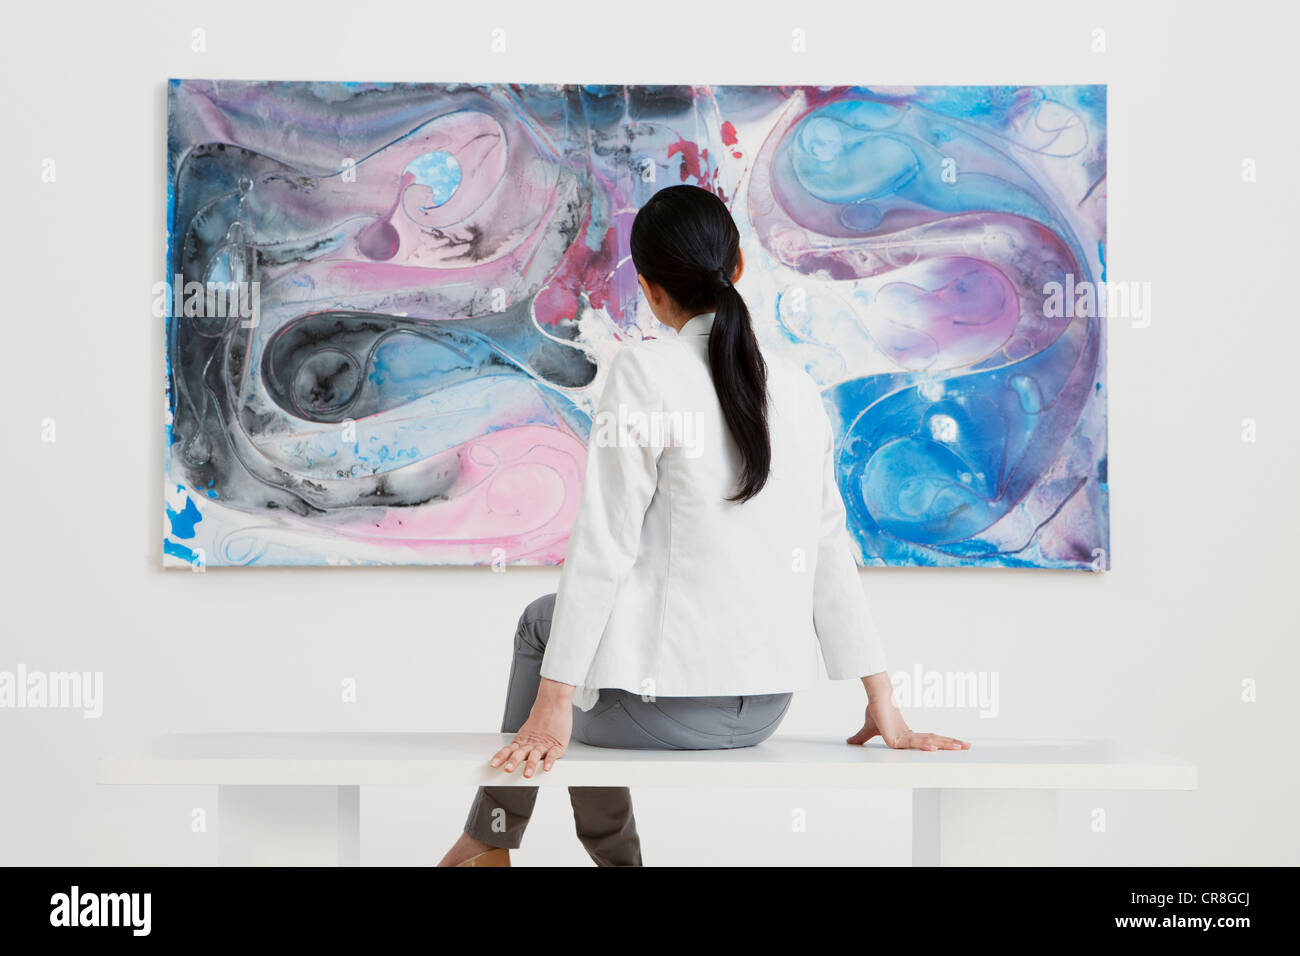 Young woman looking at oil painting in gallery - Stock Image